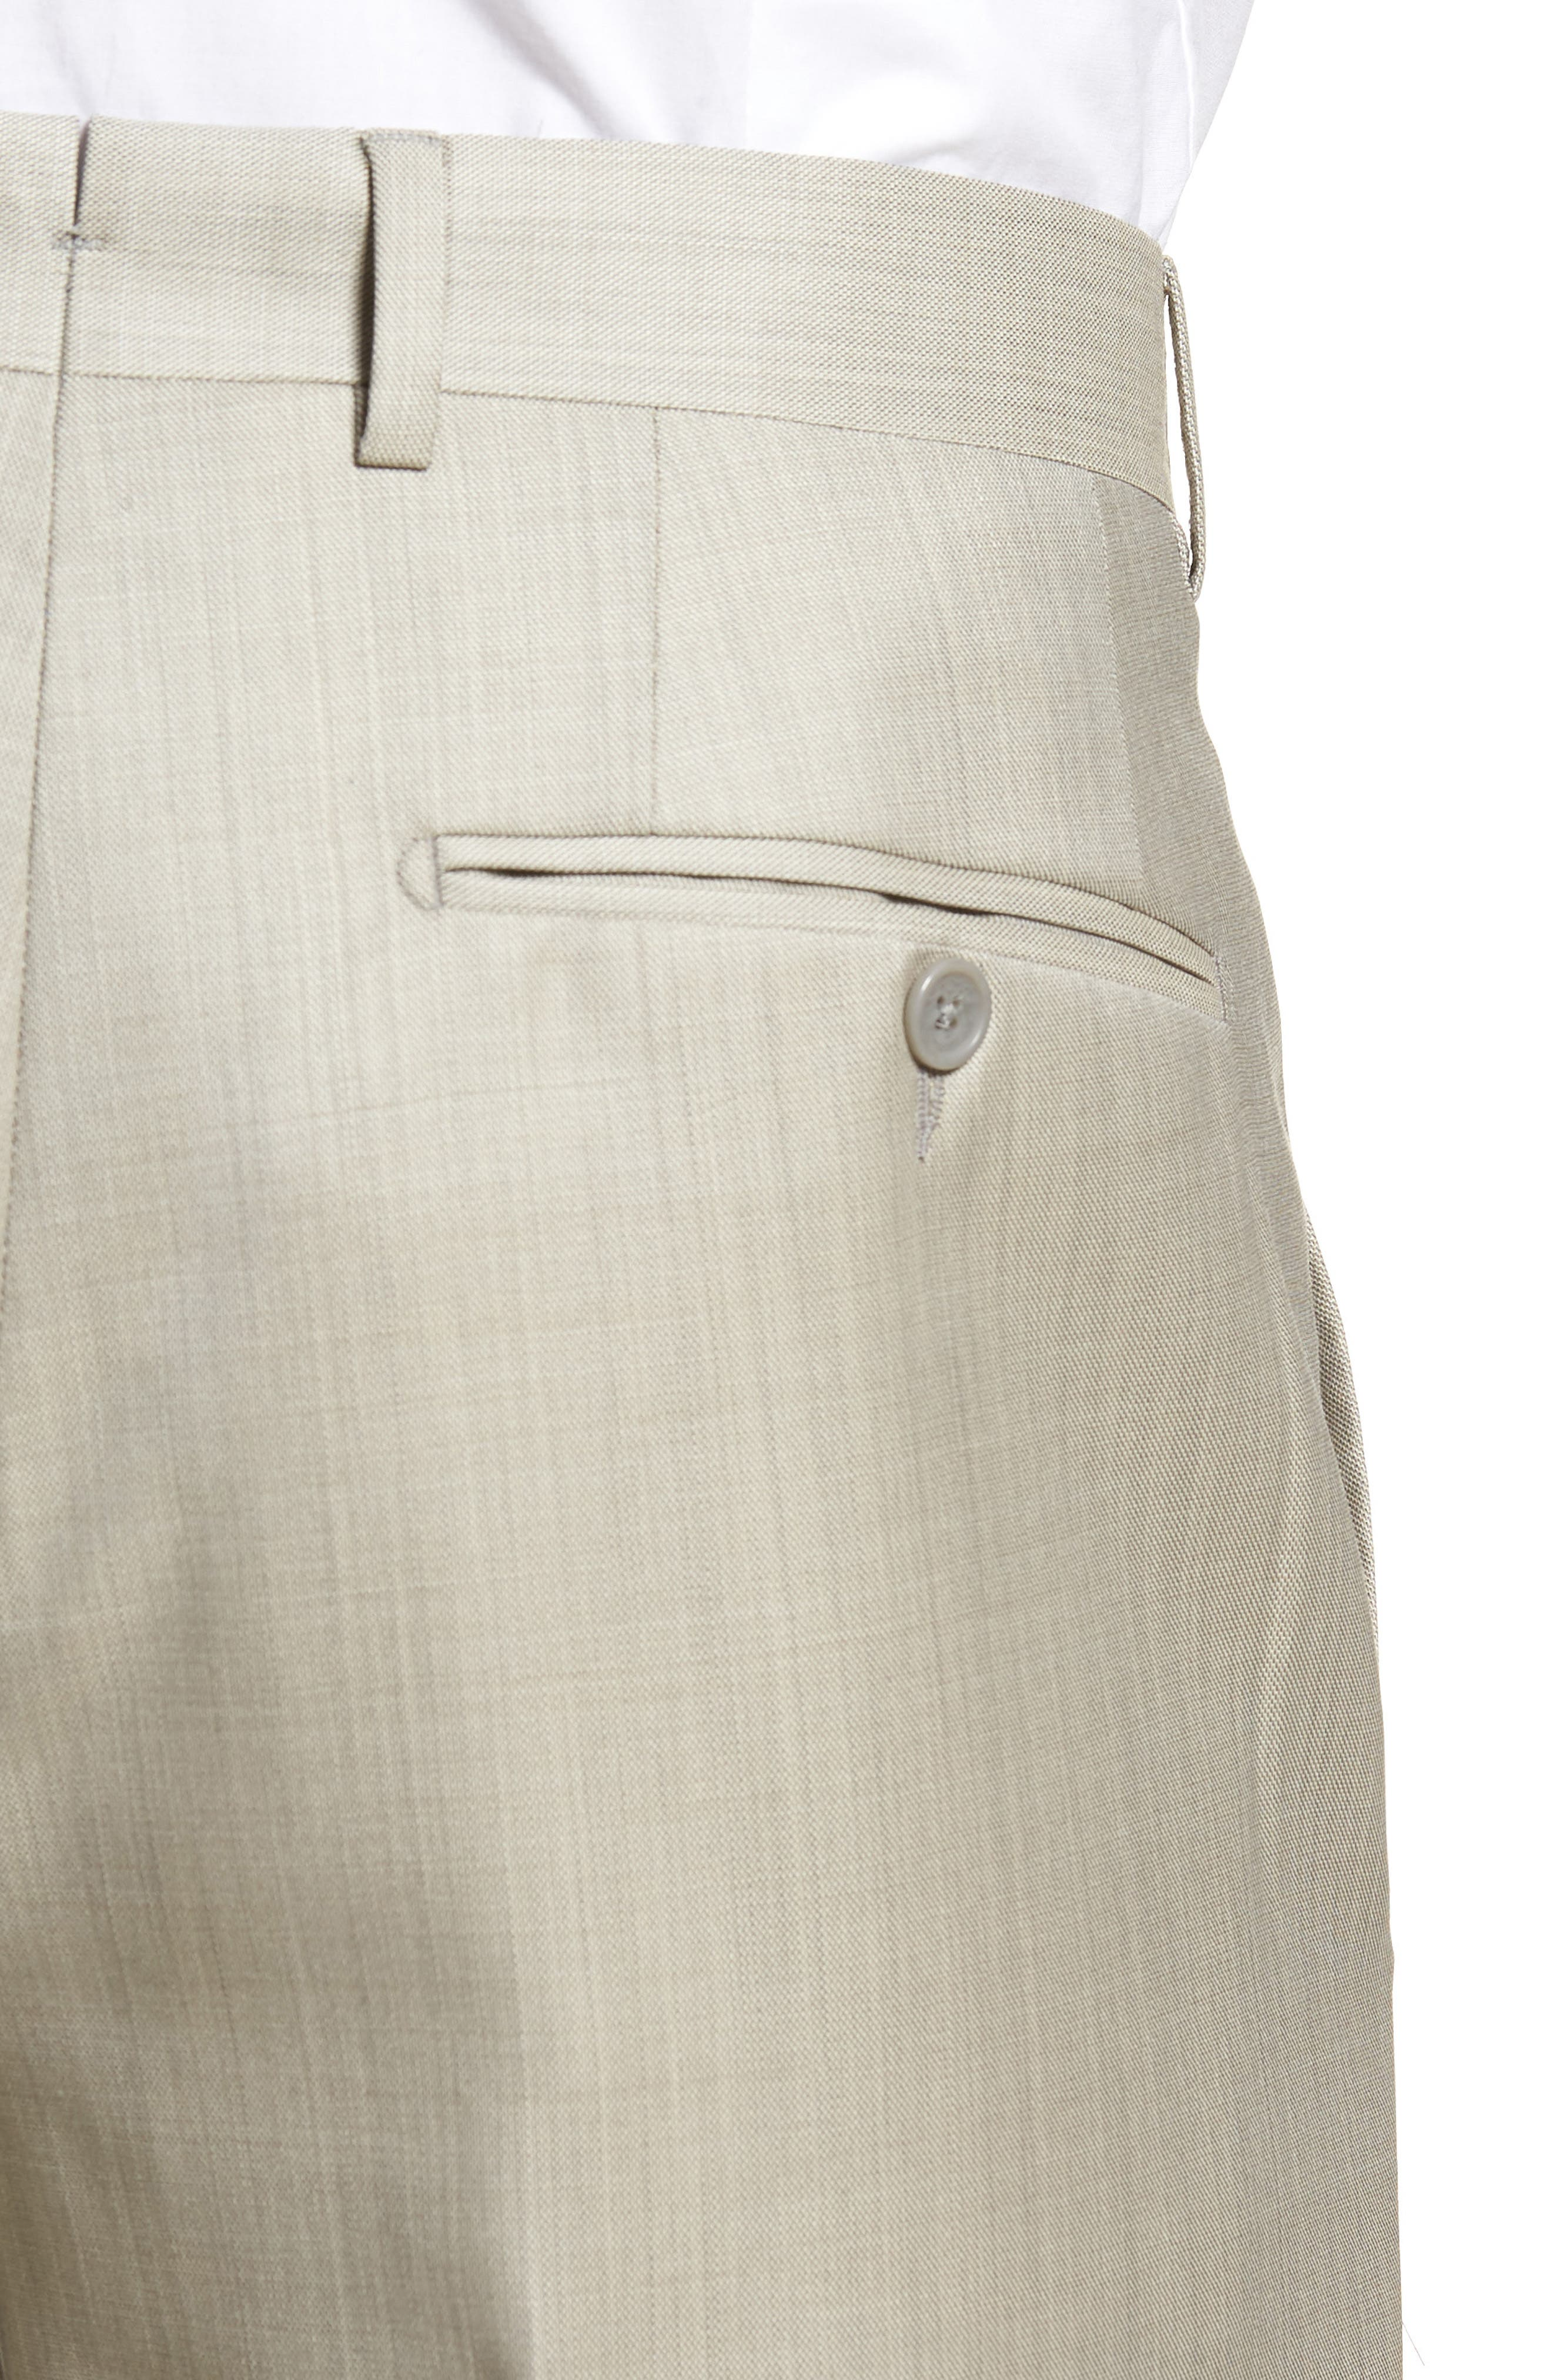 Flat Front Solid Wool Trousers,                             Alternate thumbnail 4, color,                             272